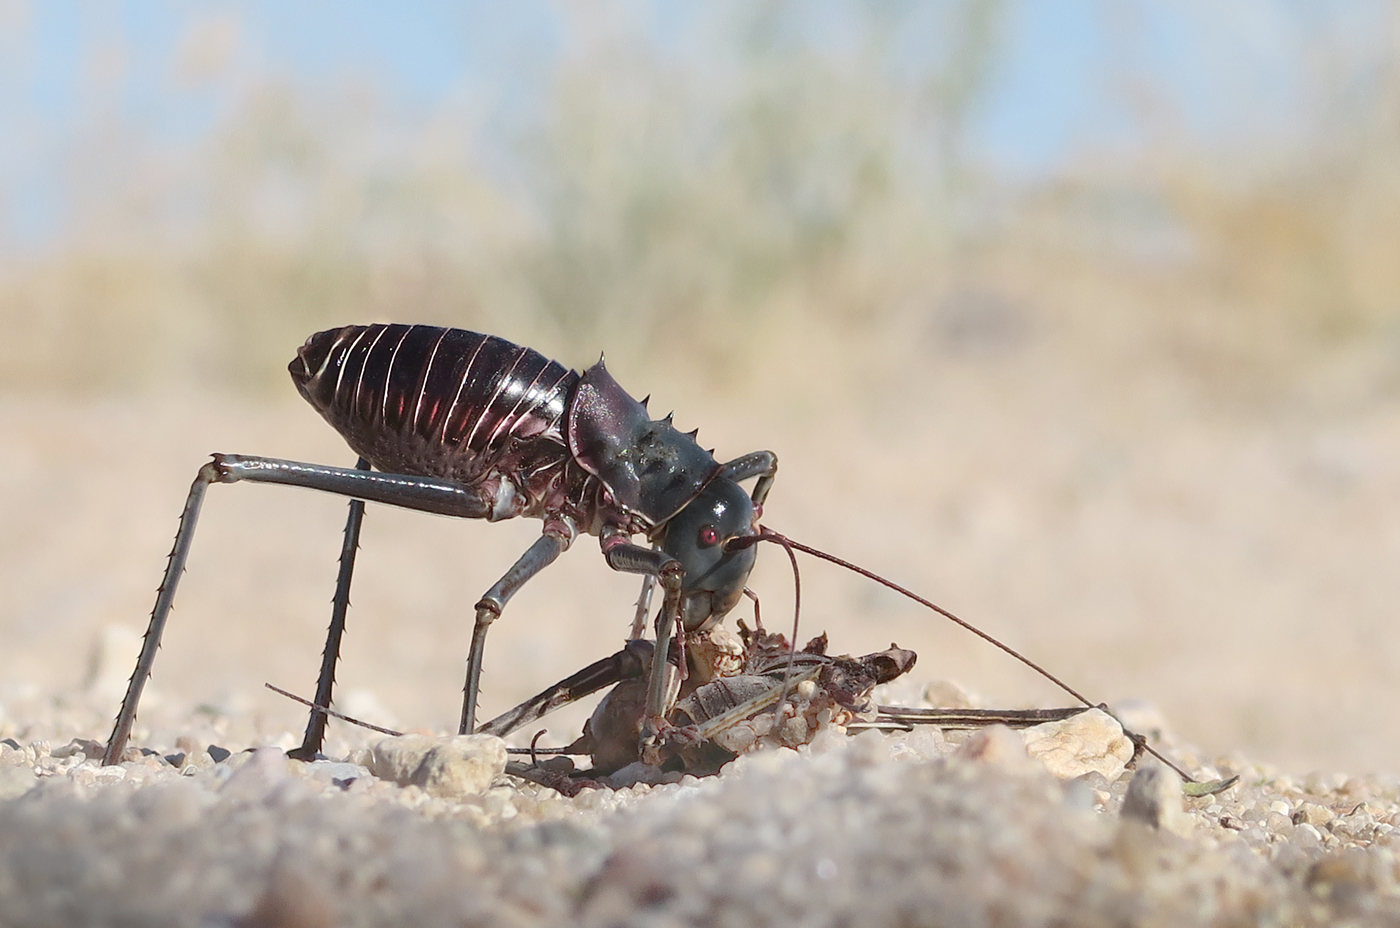 ground cricket with cricket prey